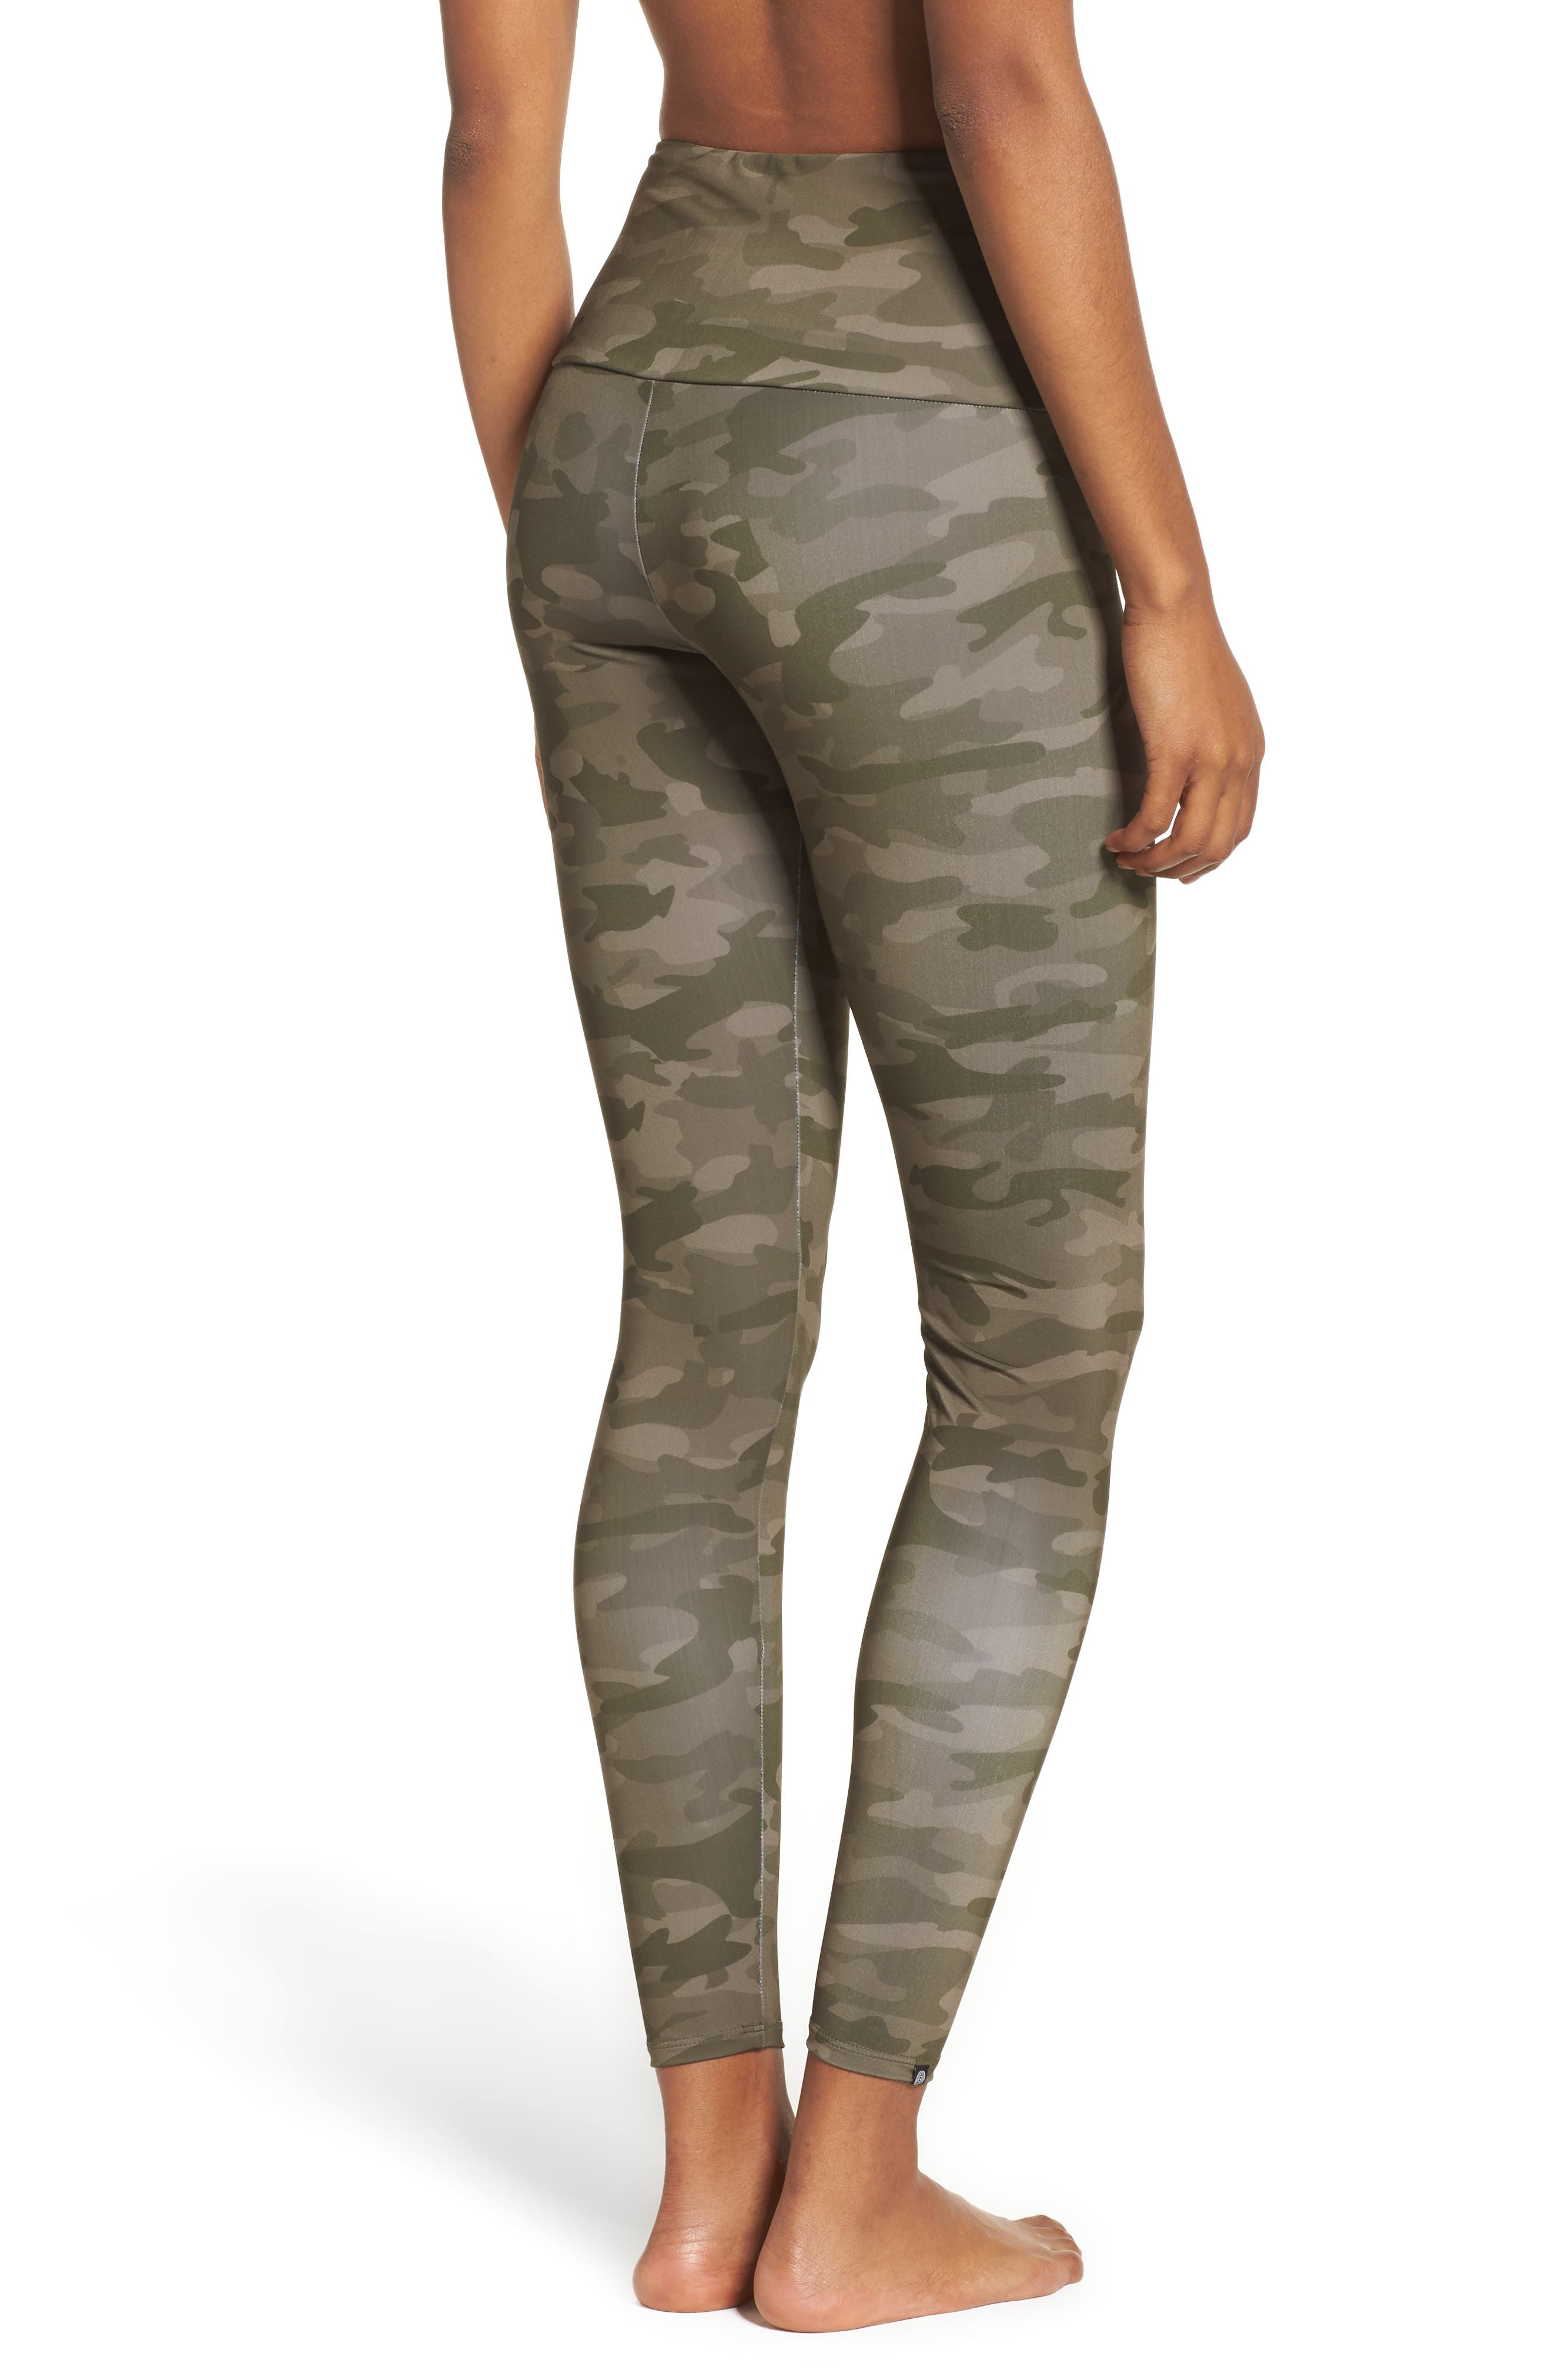 High Waist Print Leggings,                             Alternate thumbnail 2, color,                             MOSS CAMO